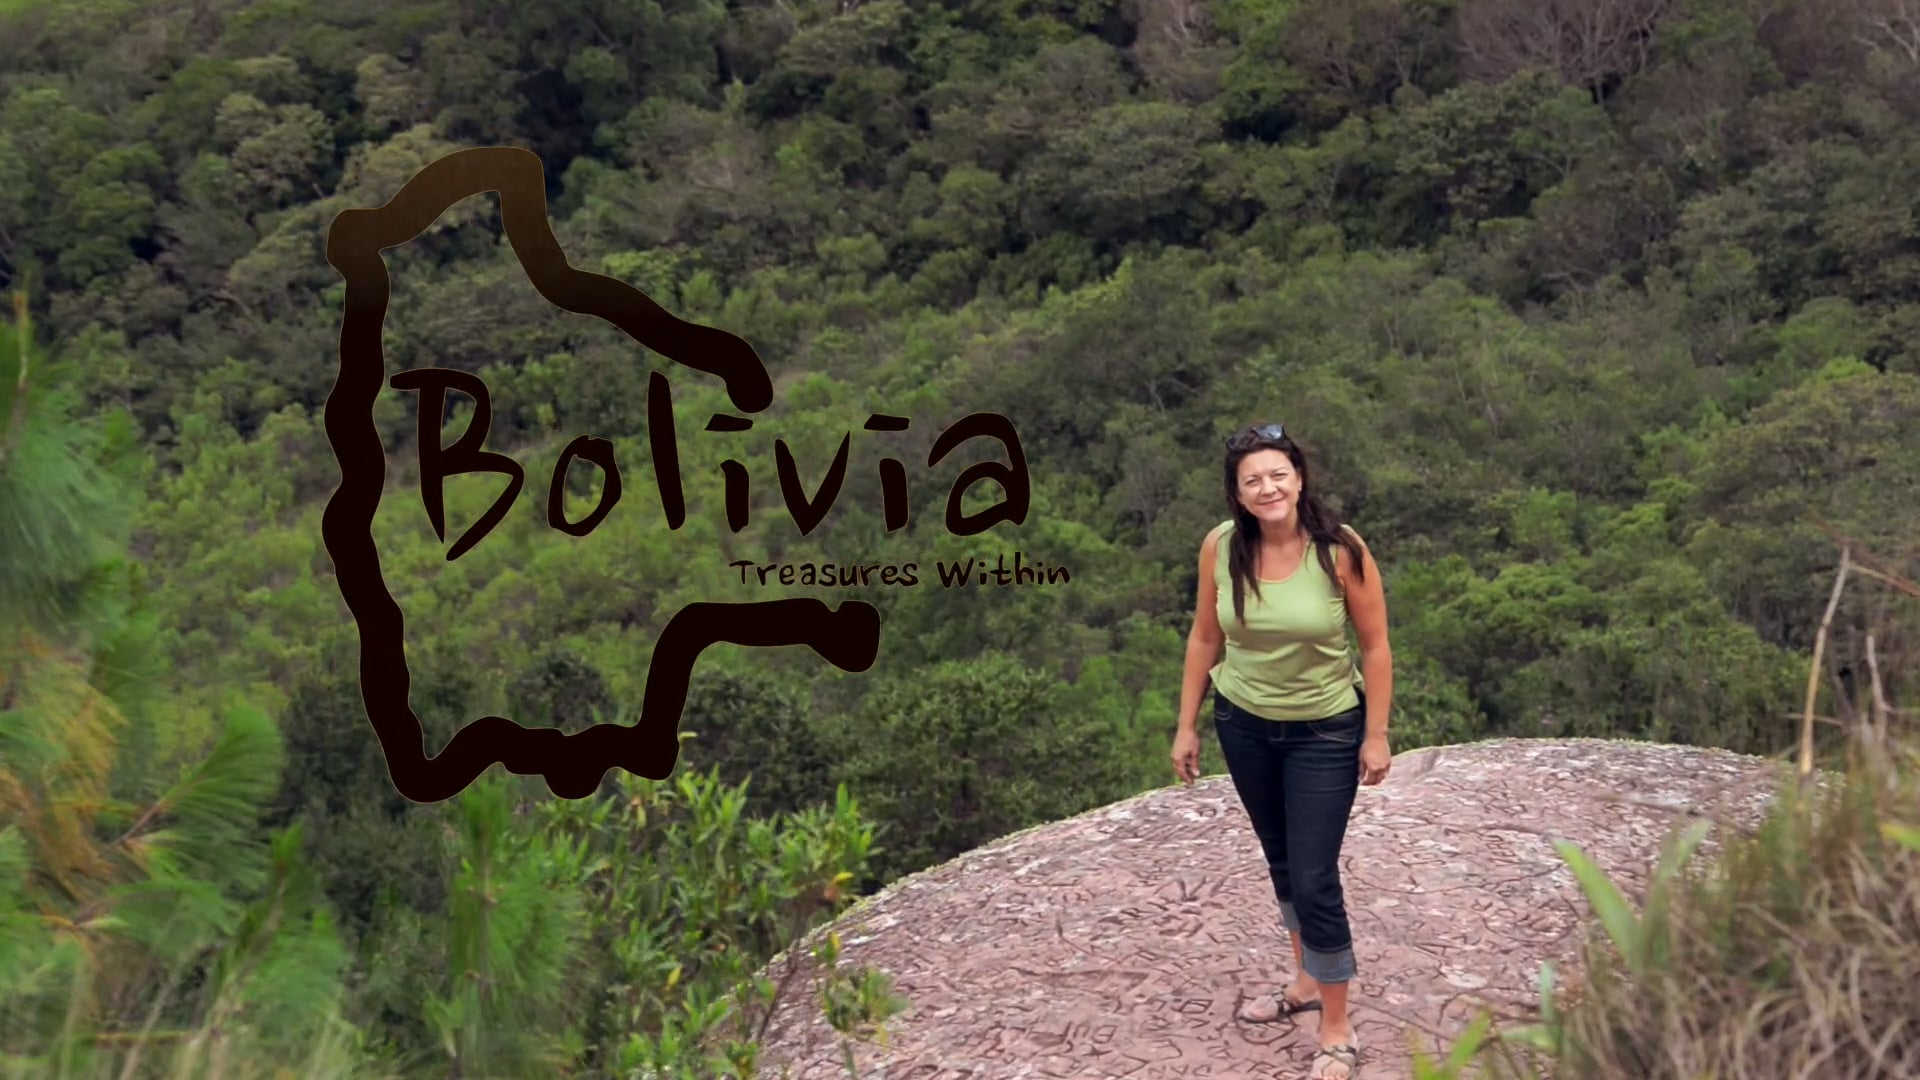 Jacqueline Clements – TCF4 Productions Bolivia Treasures Within Episode 1 – Teaser.mov